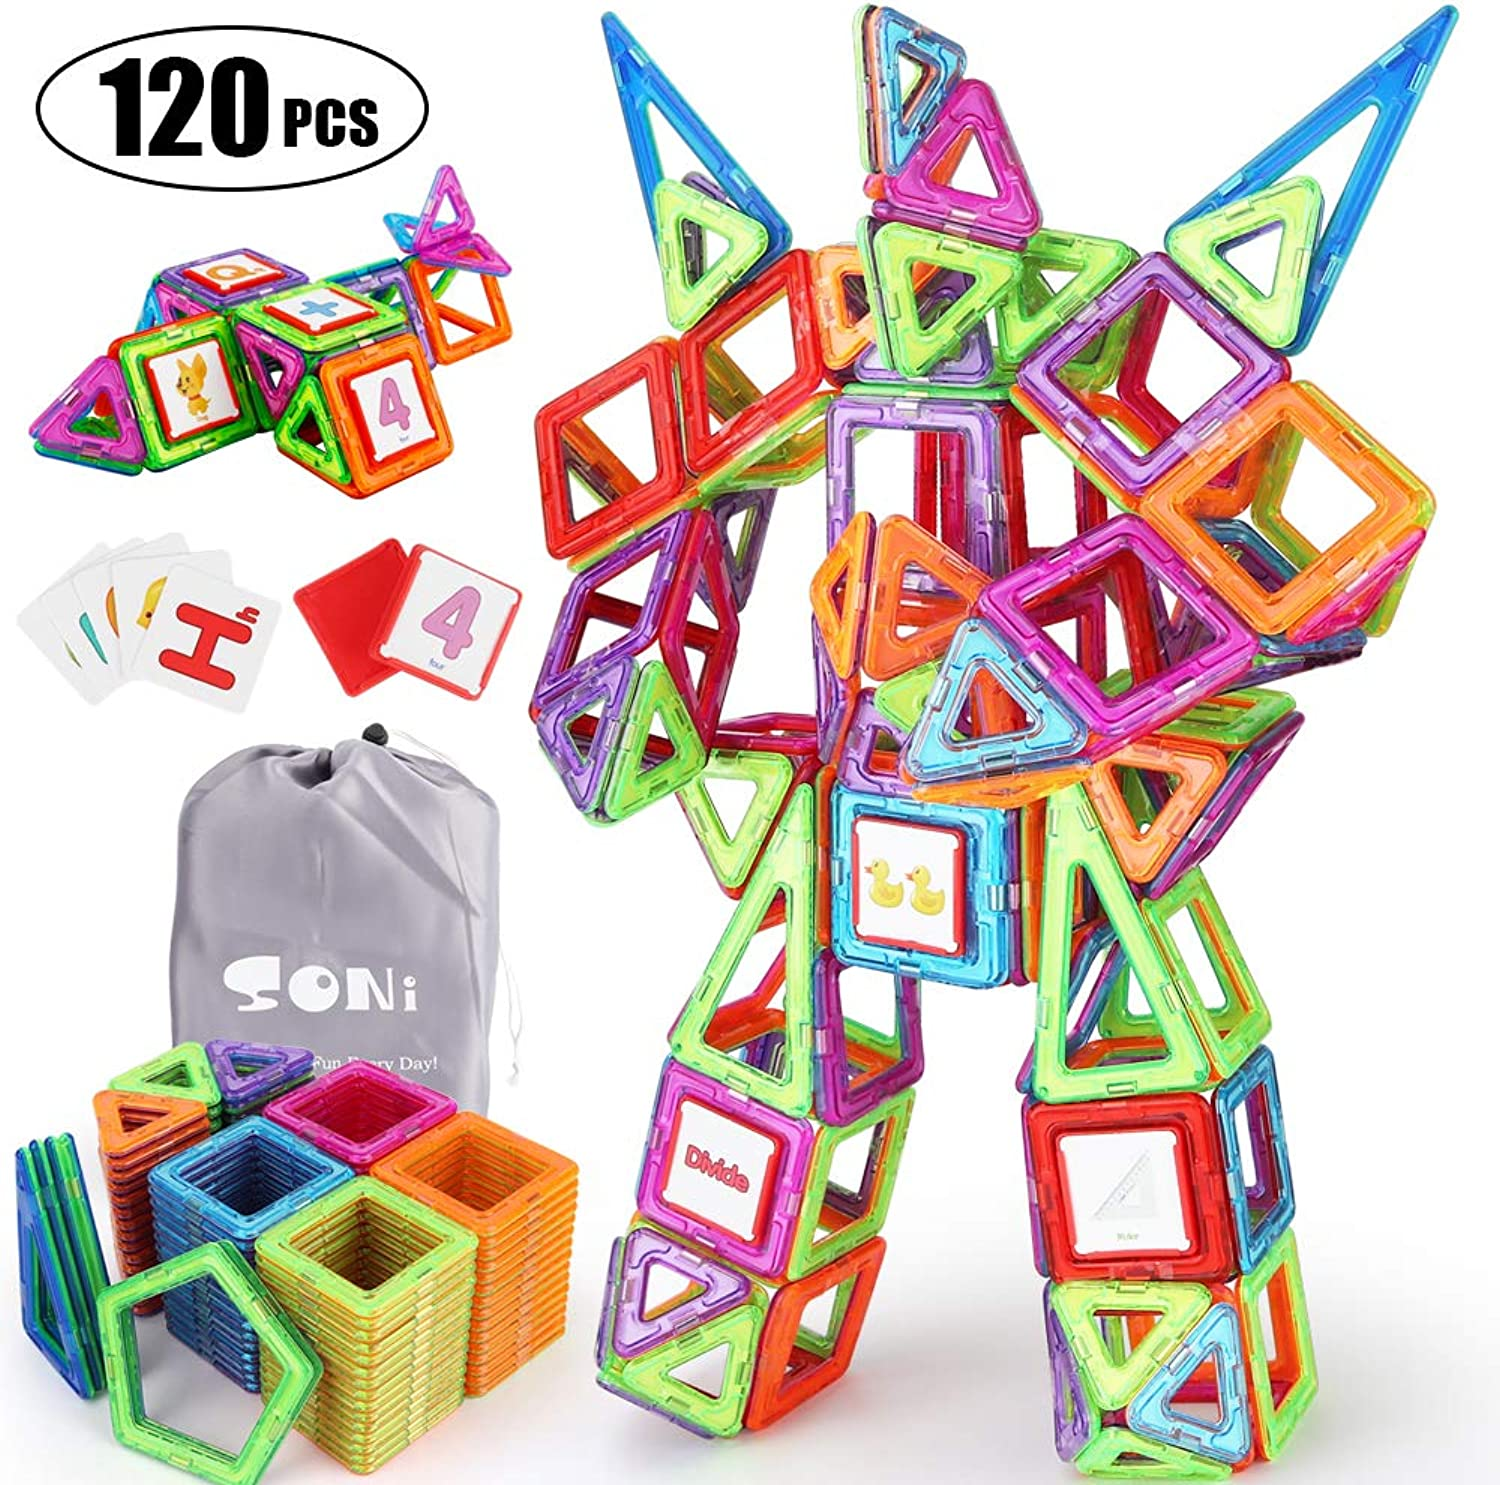 SONi 120Pcs Magnetic Building Blocks Educational Stacking Blocks Toddler Toys,Magnetic Blocks Set for Boys and Girls